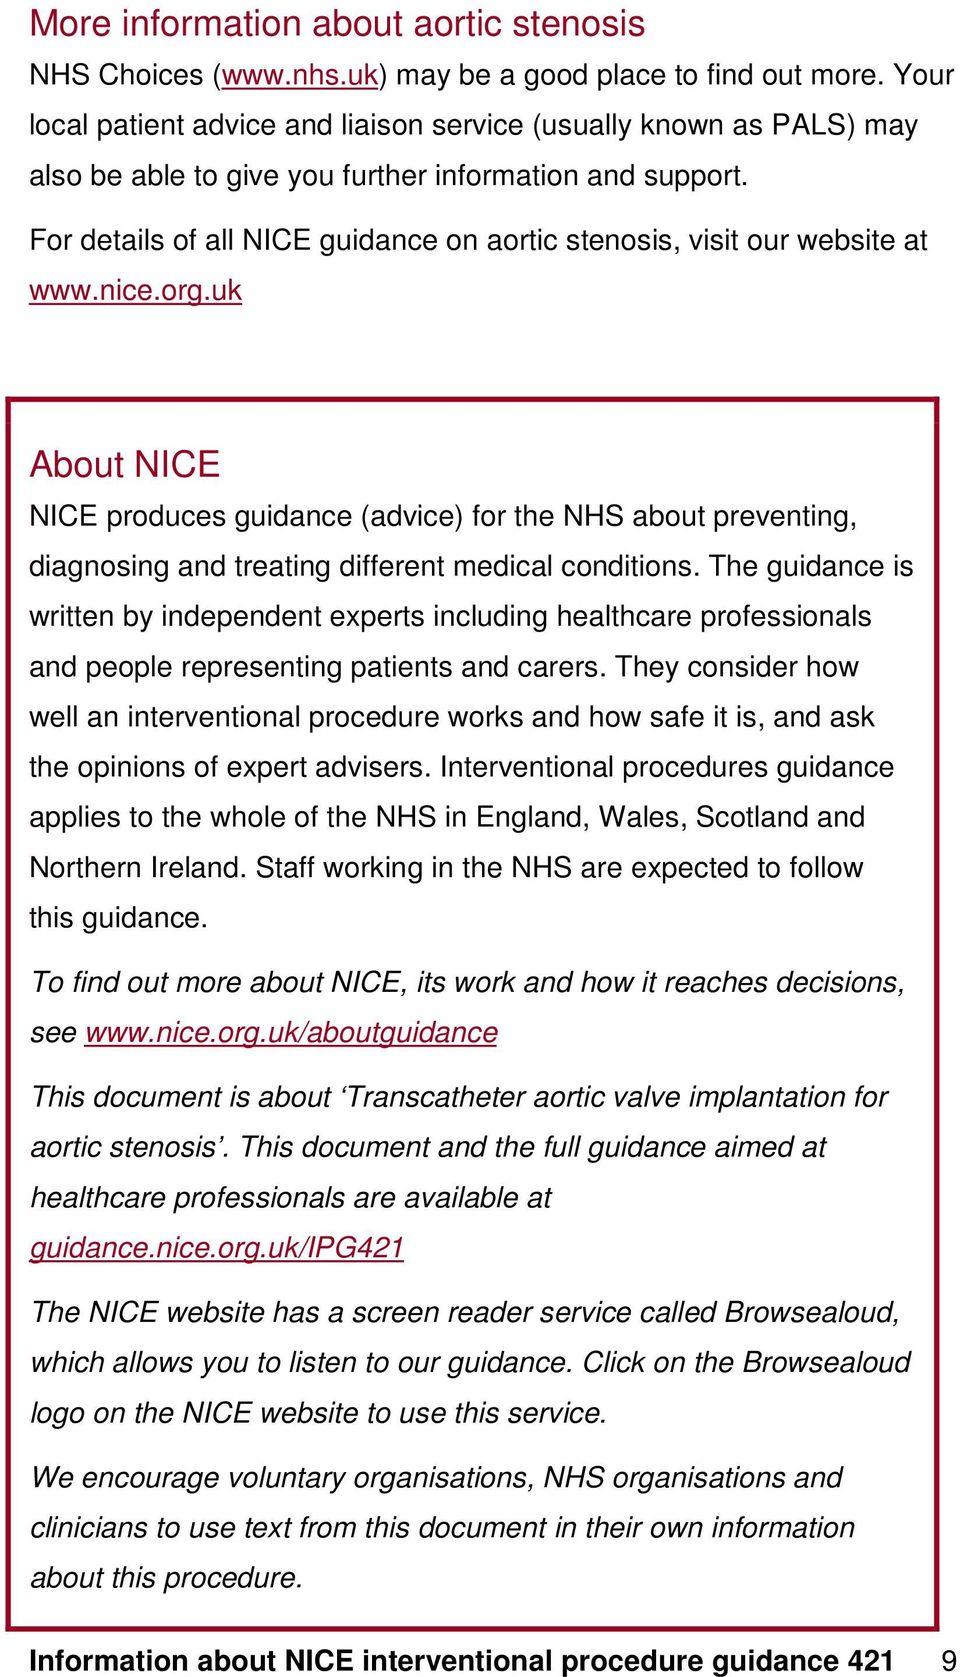 For details of all NICE guidance on aortic stenosis, visit our website at www.nice.org.